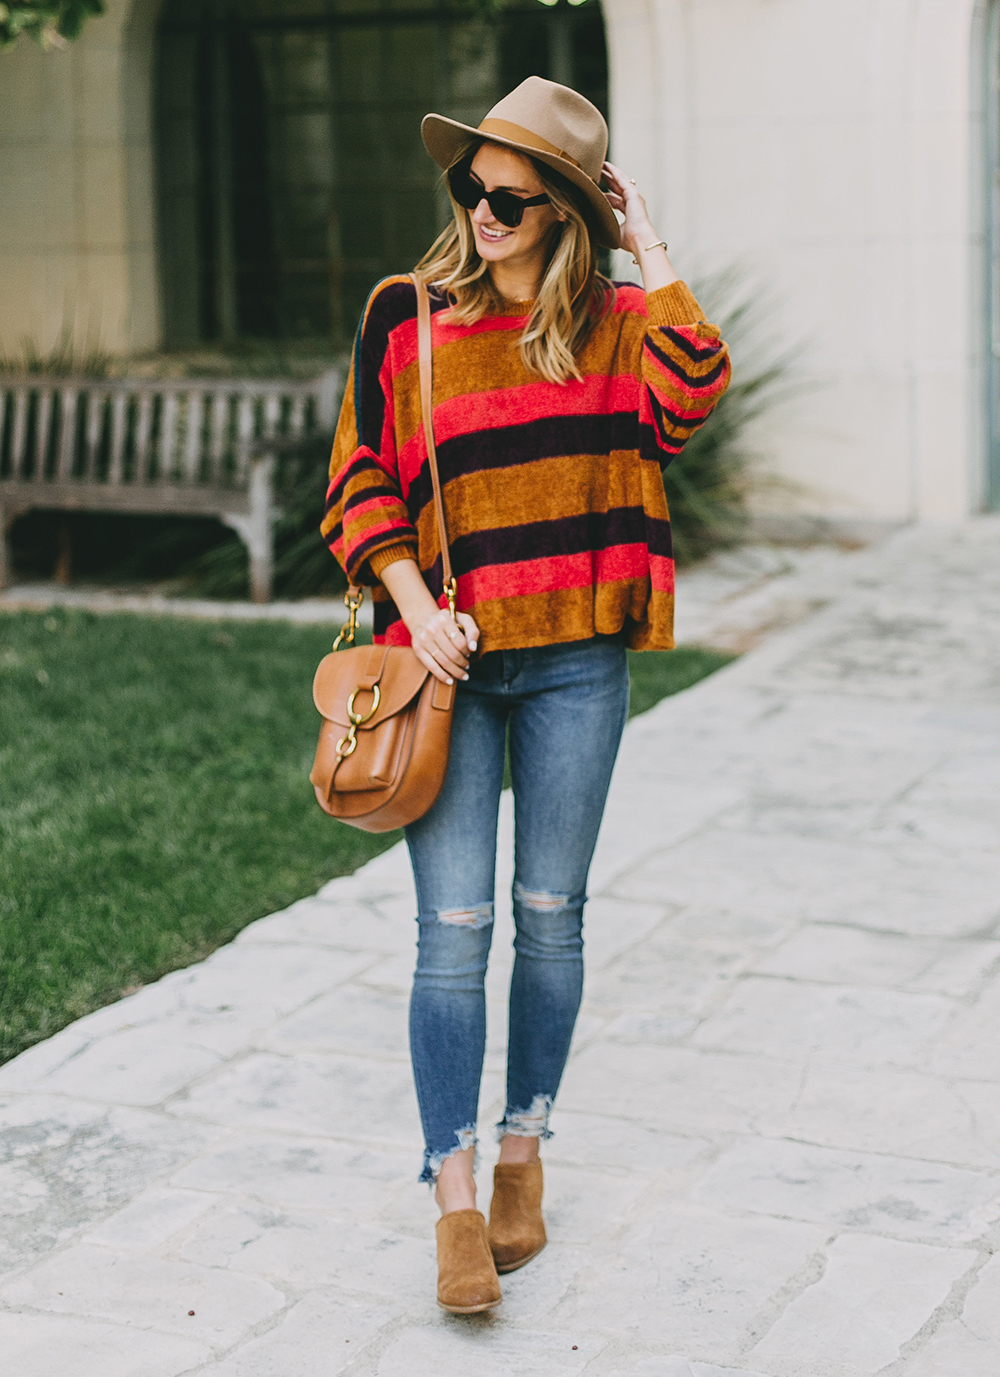 livvyland-blog-olivia-watson-austin-texas-fashion-blogger-free-people-oversize-striped-sweater-boho-chic-5